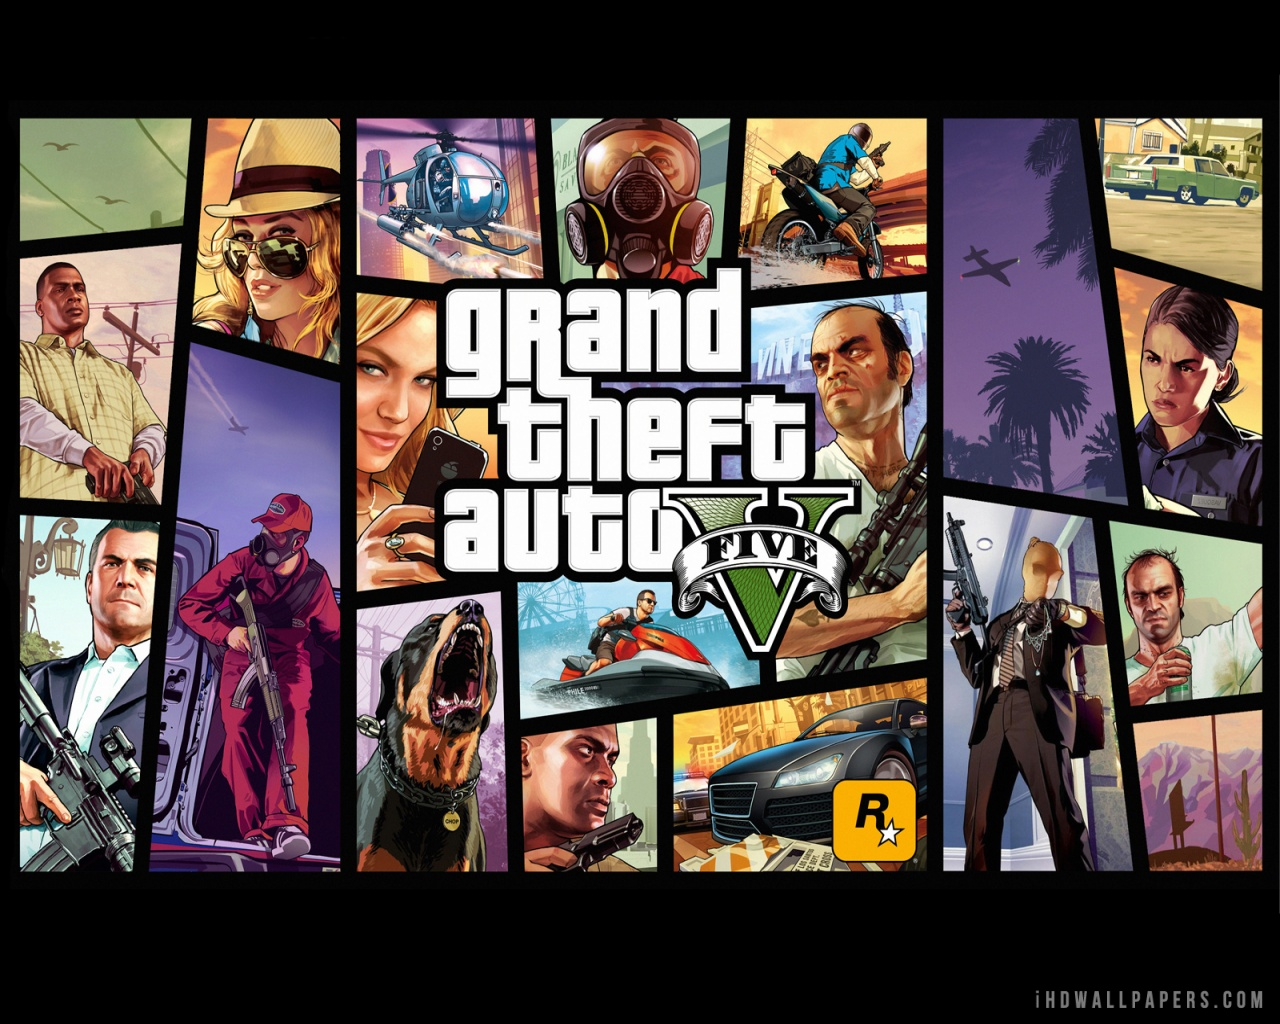 Grand Theft Auto Gta 5 Wallpaper Hd   3D Drawing Ideas 1280x1024